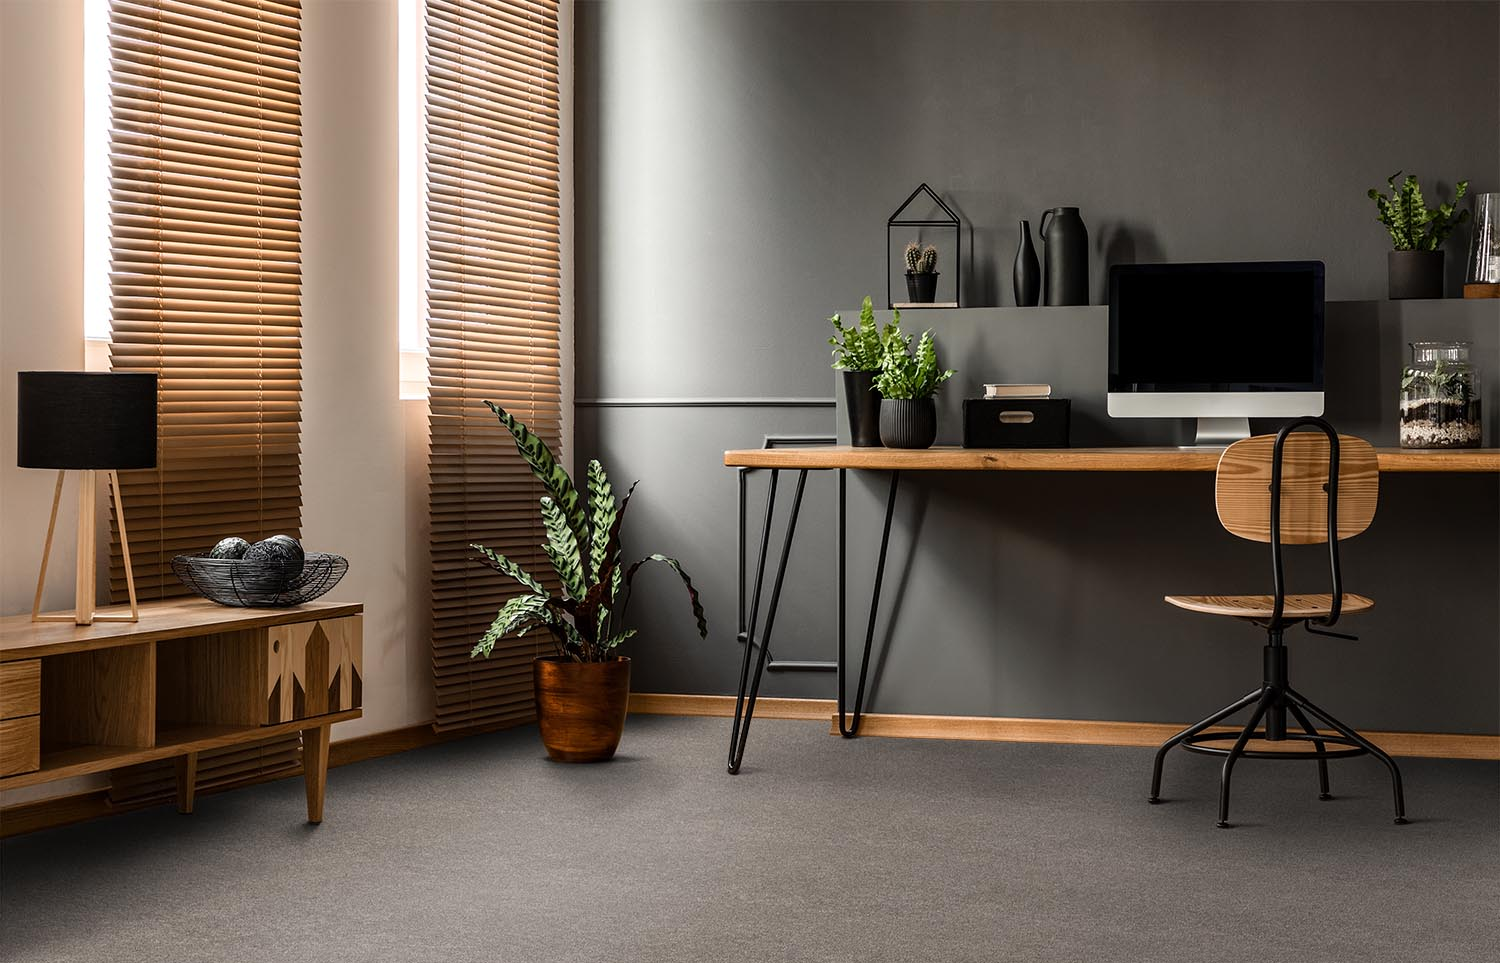 Softology - S201 - Puff home office